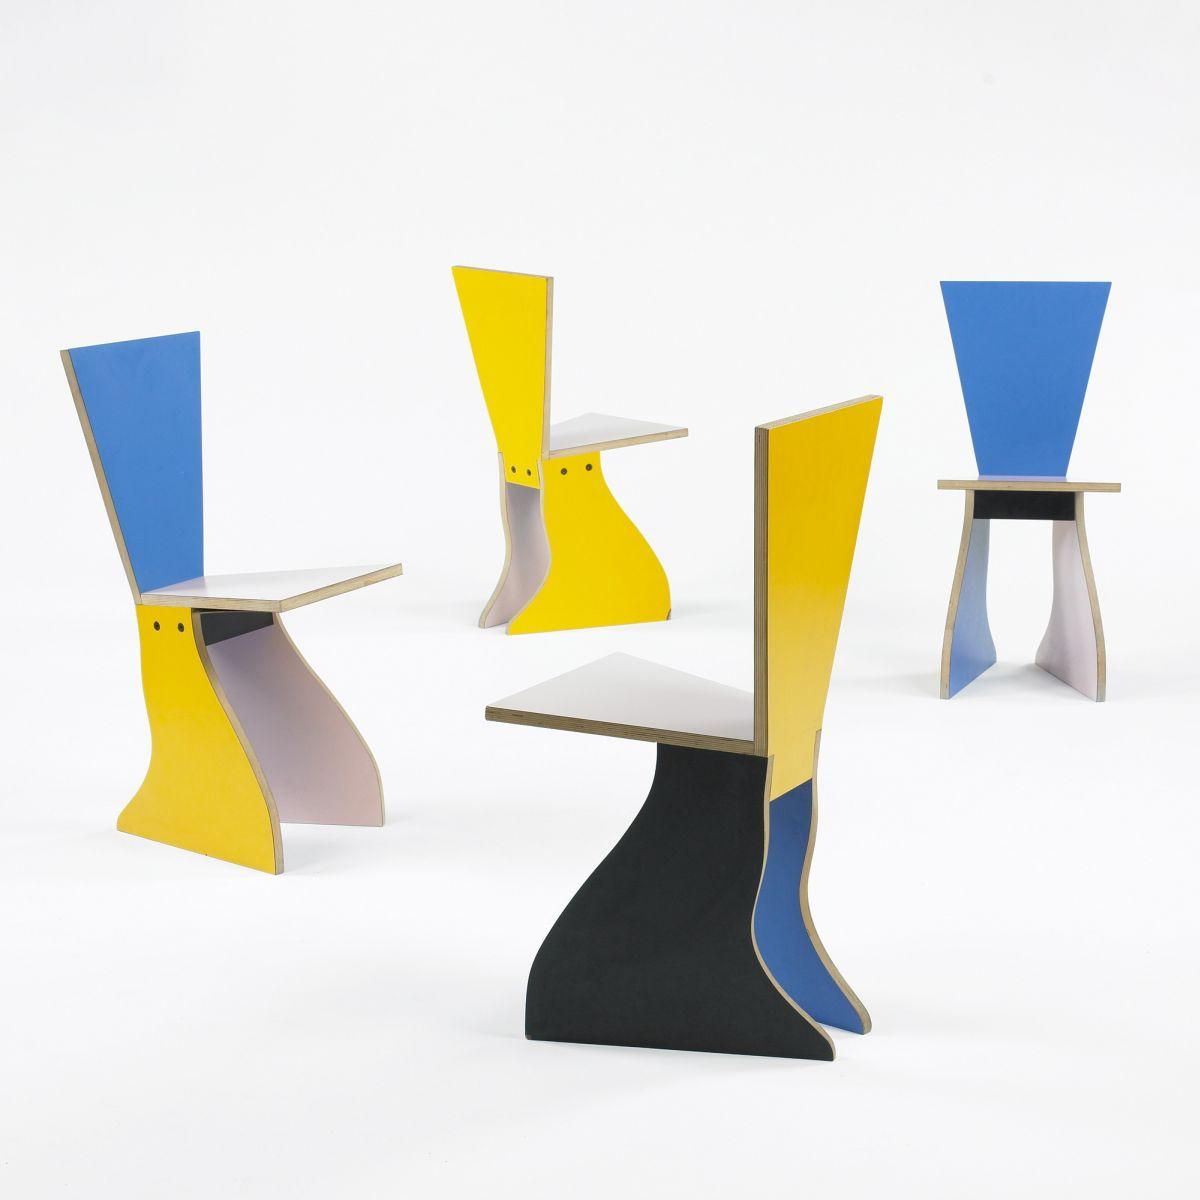 Alessandro Mendini Tribute to a Legend of Contemporary Design - Chairs alessandro mendini Alessandro Mendini: Tribute to a Legend of Contemporary Design Alessandro Mendini Tribute to a Legend of Contemporary Design Chairs